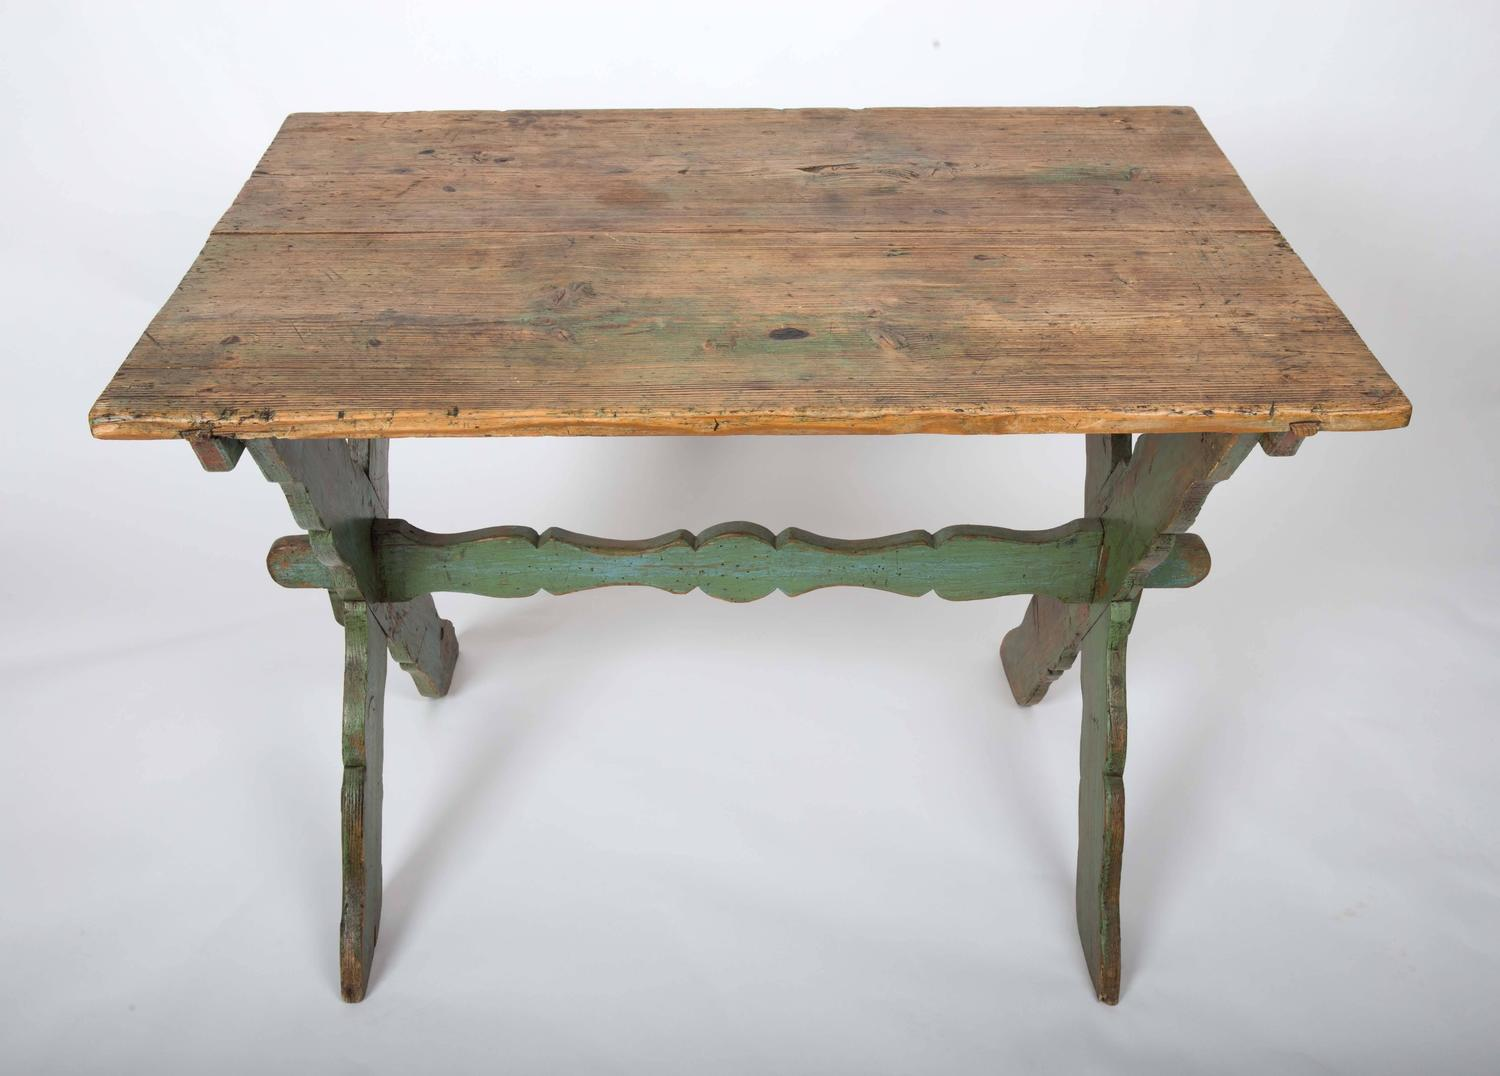 Rustic Farm Table With Painted Wood Base At 1stdibs. Full resolution  file, nominally Width 1500 Height 1076 pixels, file with #946638.